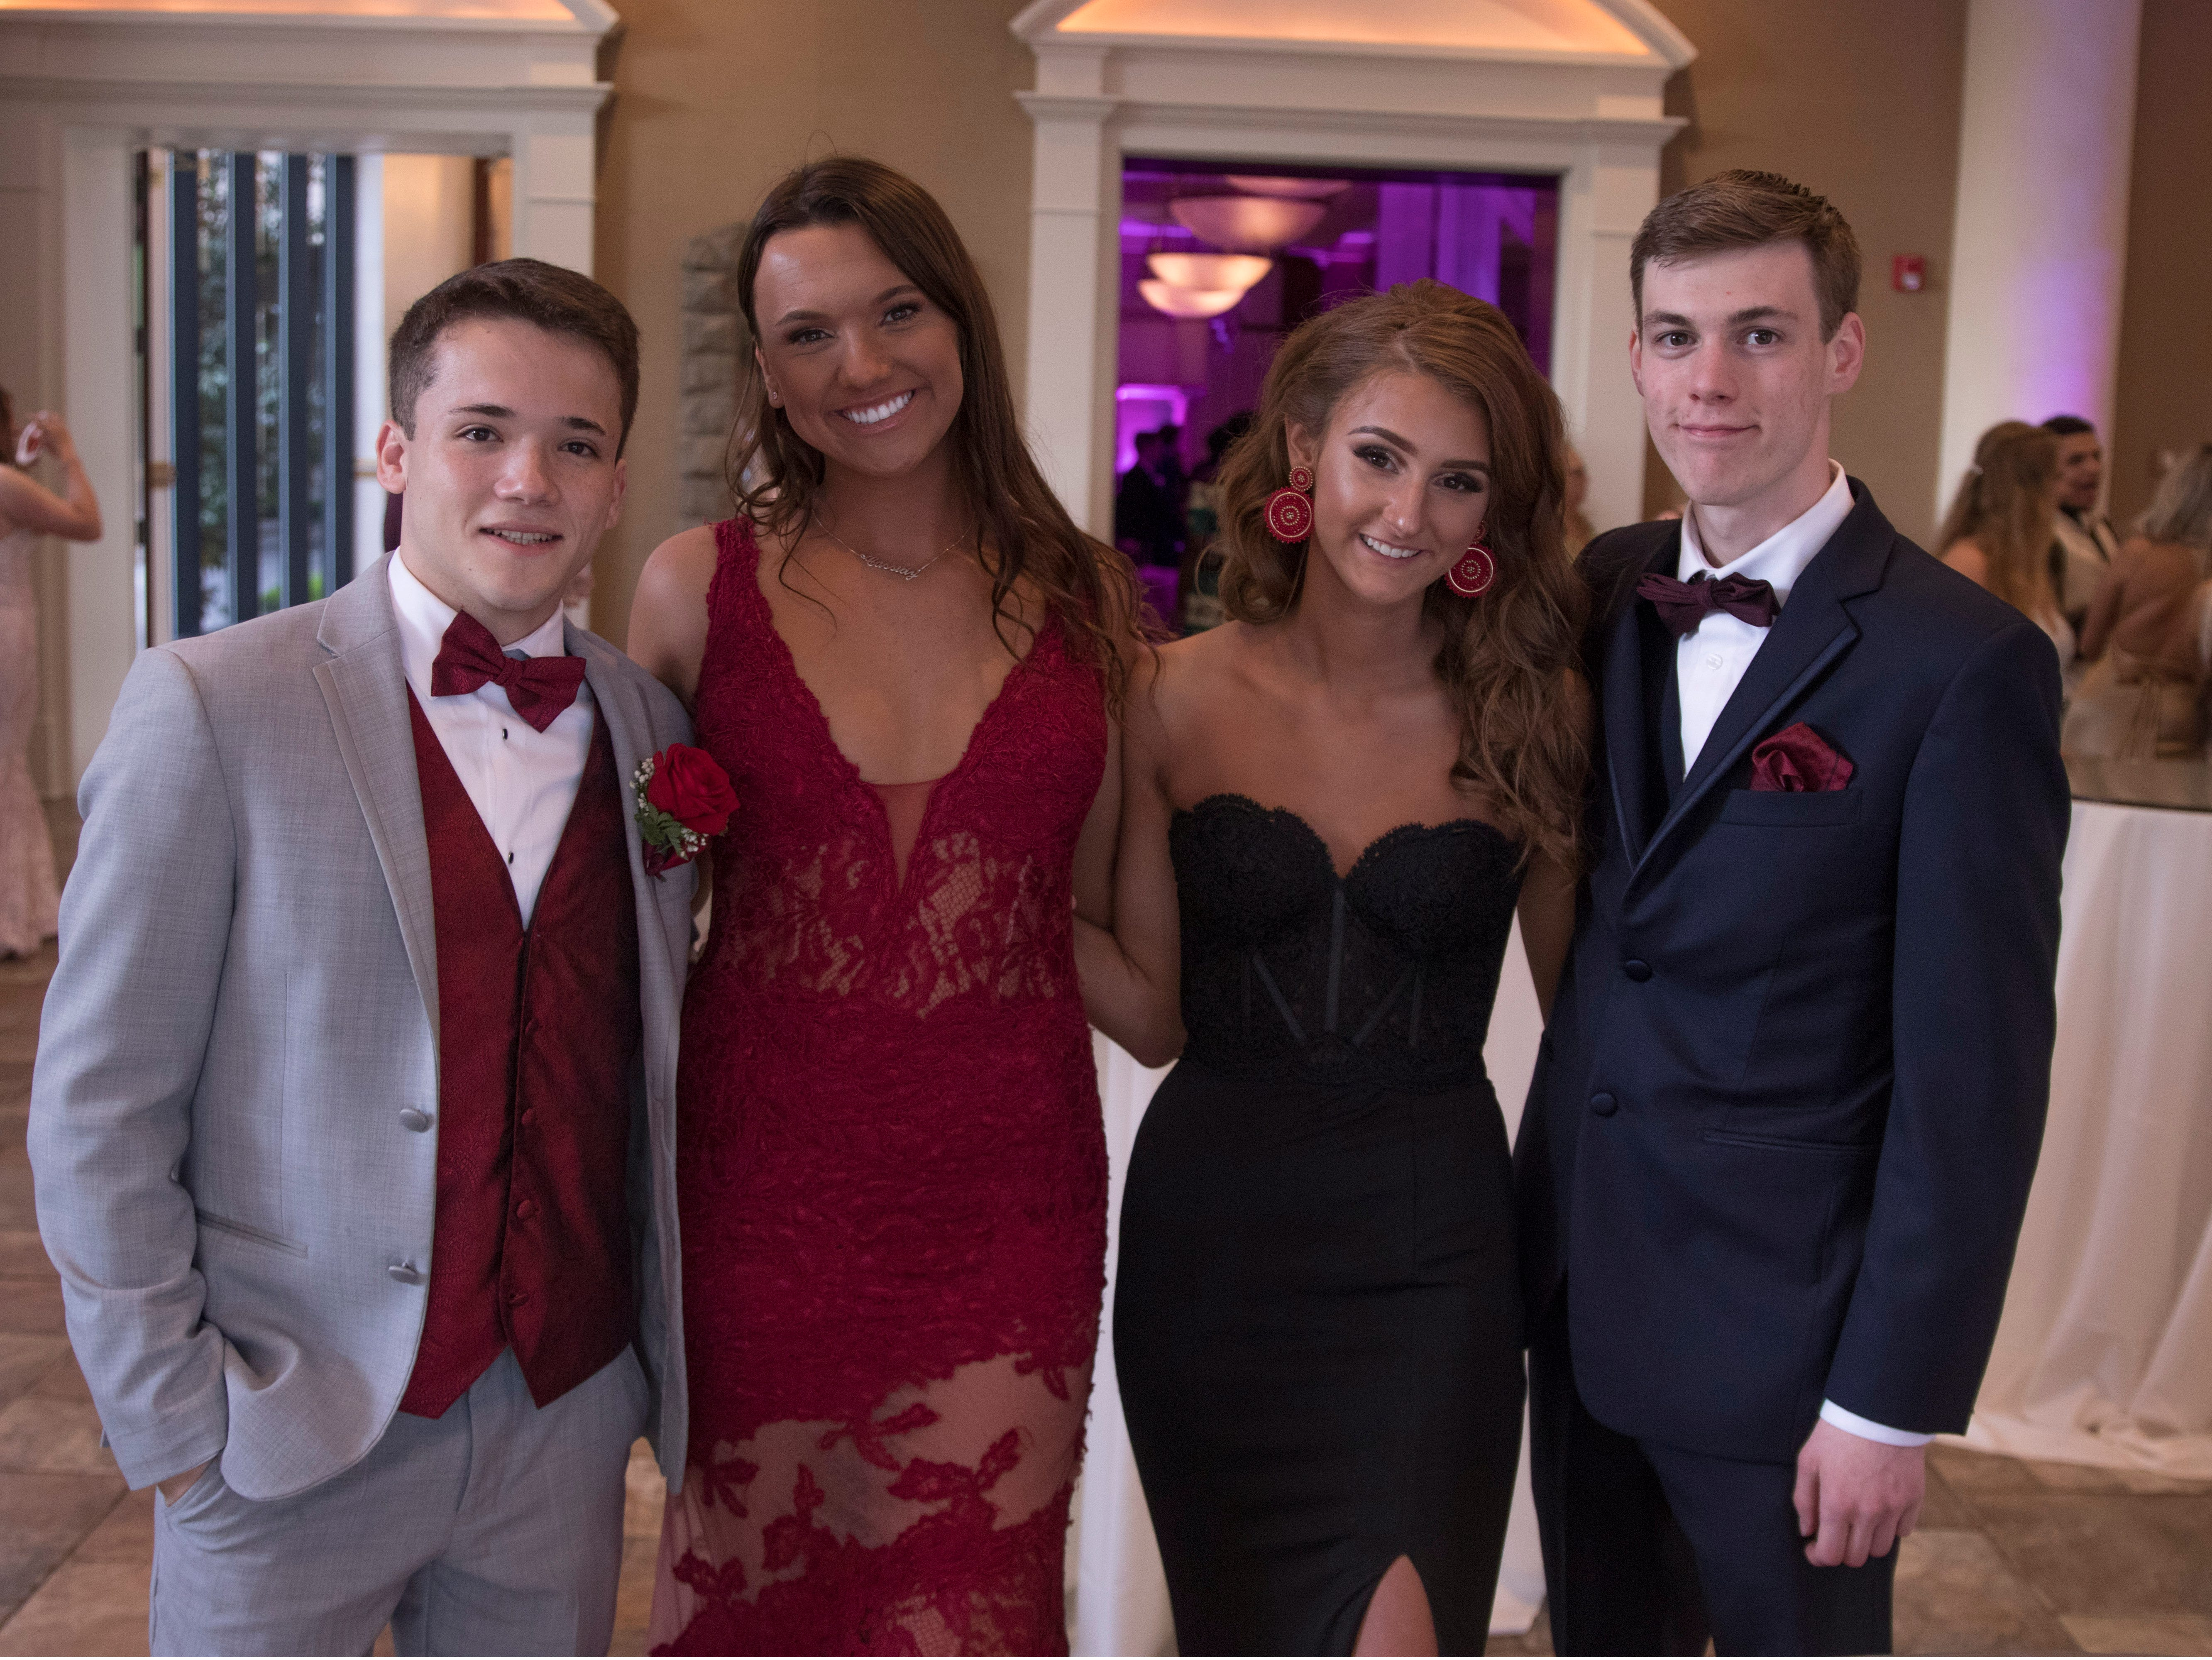 Toms River High School South prom 2019: See the dresses, hairstyles, glitz and glam